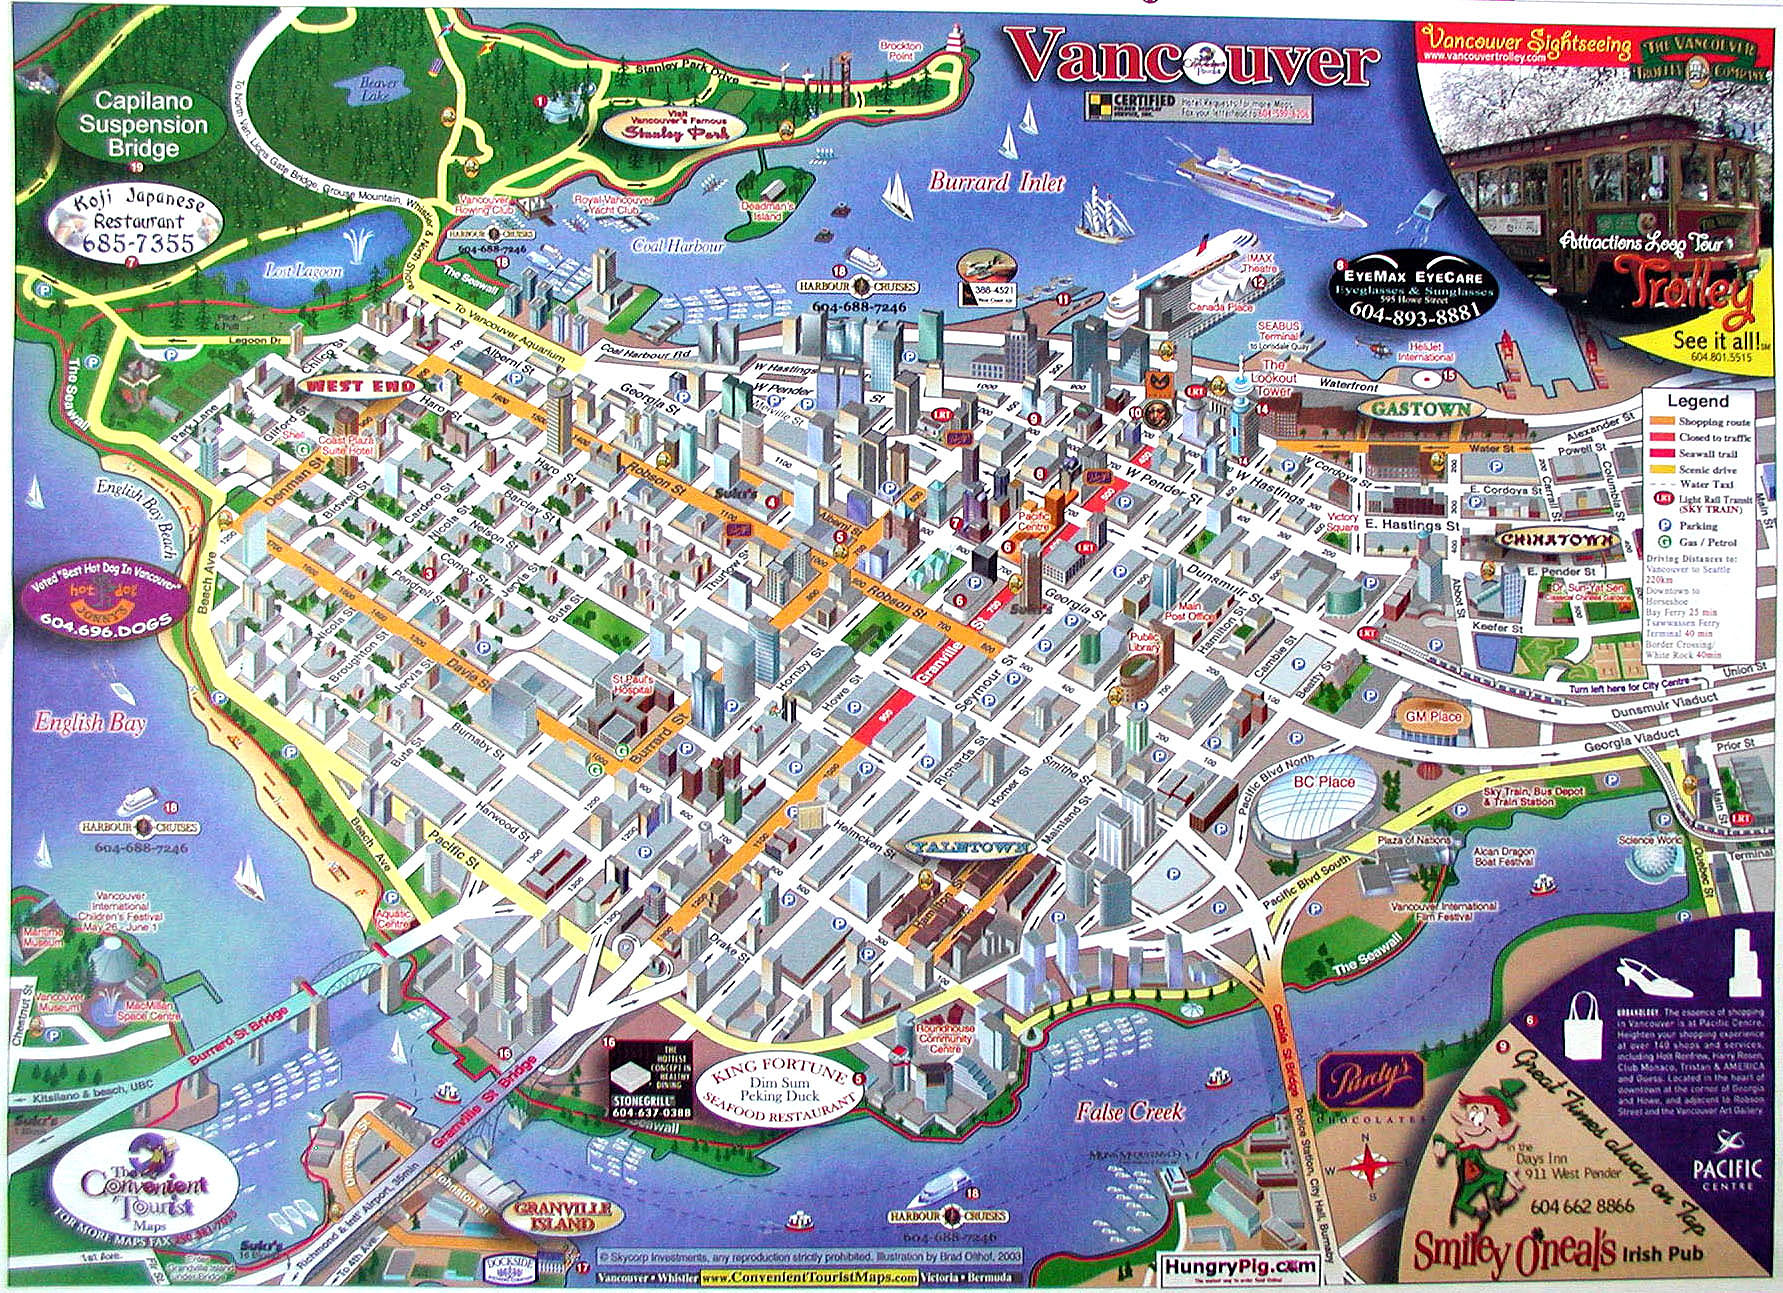 Vancouver Downtown Map - Vancouver BC • mappery